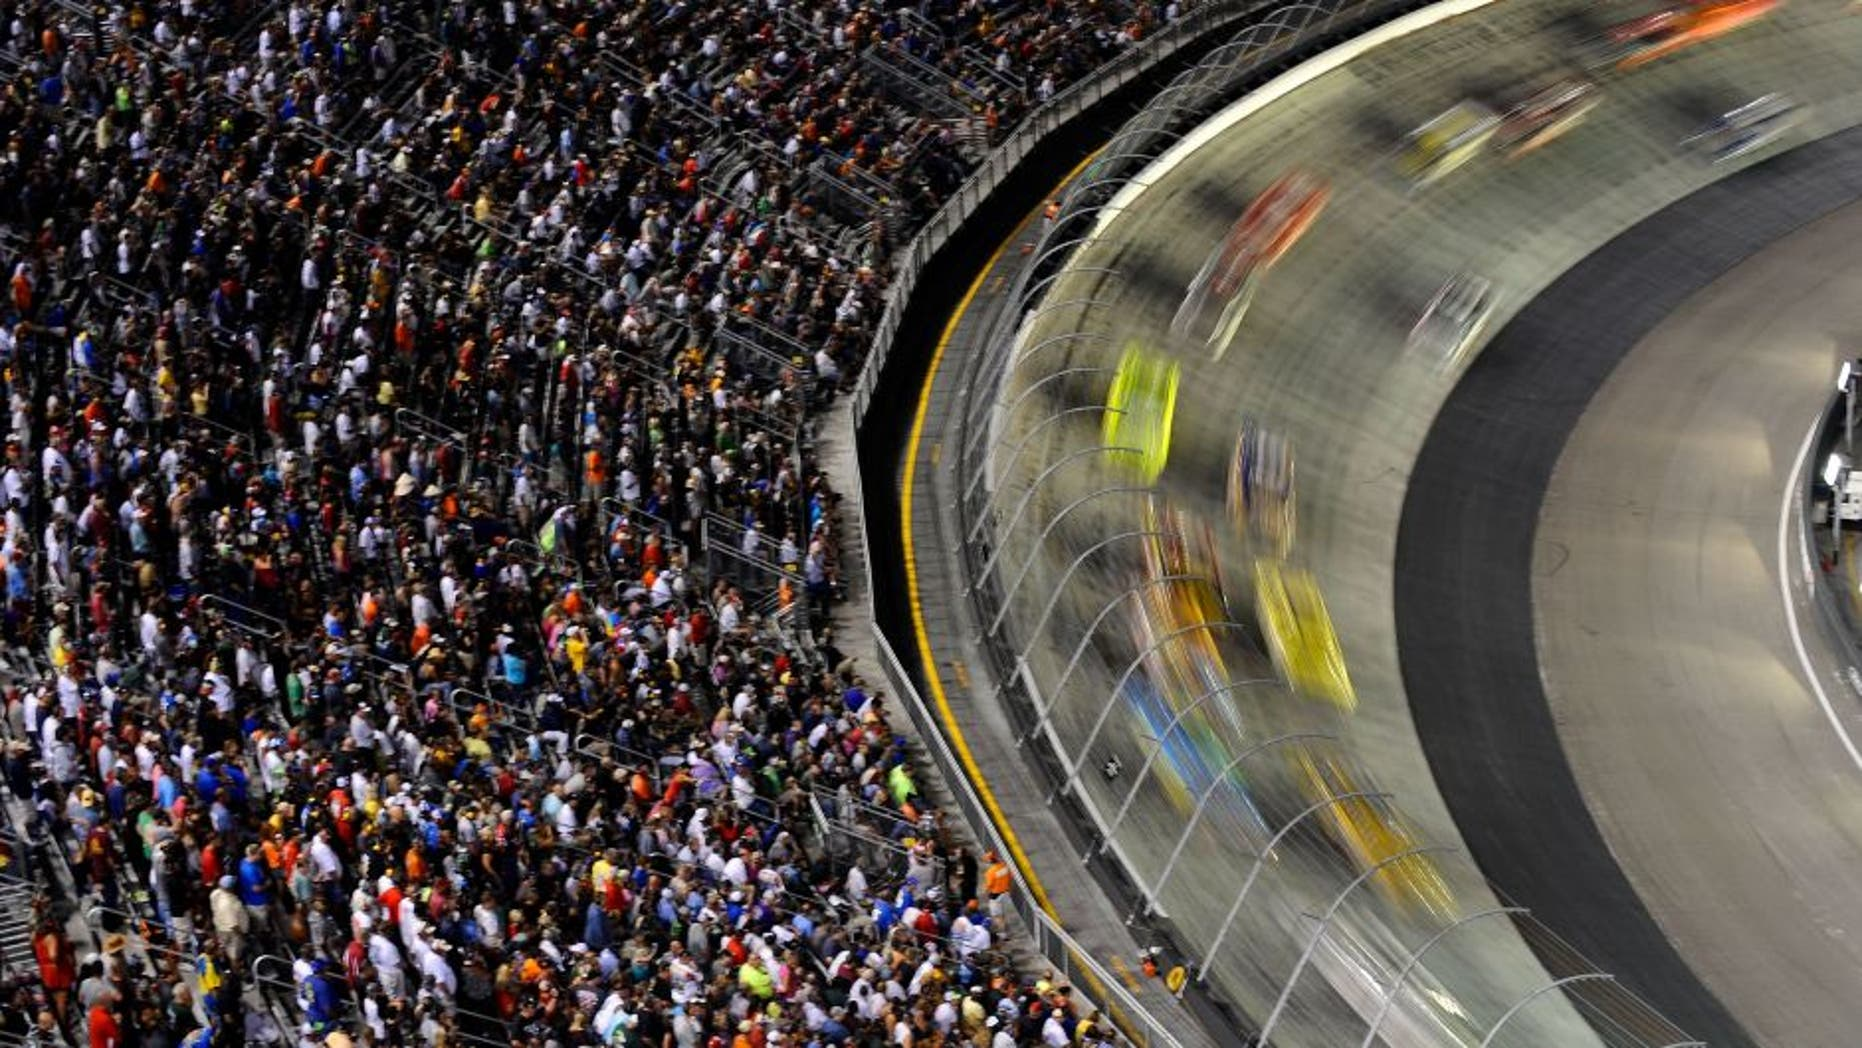 BRISTOL, TN - AUGUST 25: Cars race during the NASCAR Sprint Cup Series IRWIN Tools Night Race at Bristol Motor Speedway on August 25, 2012 in Bristol, Tennessee. (Photo by Jared C. Tilton/Getty Images)